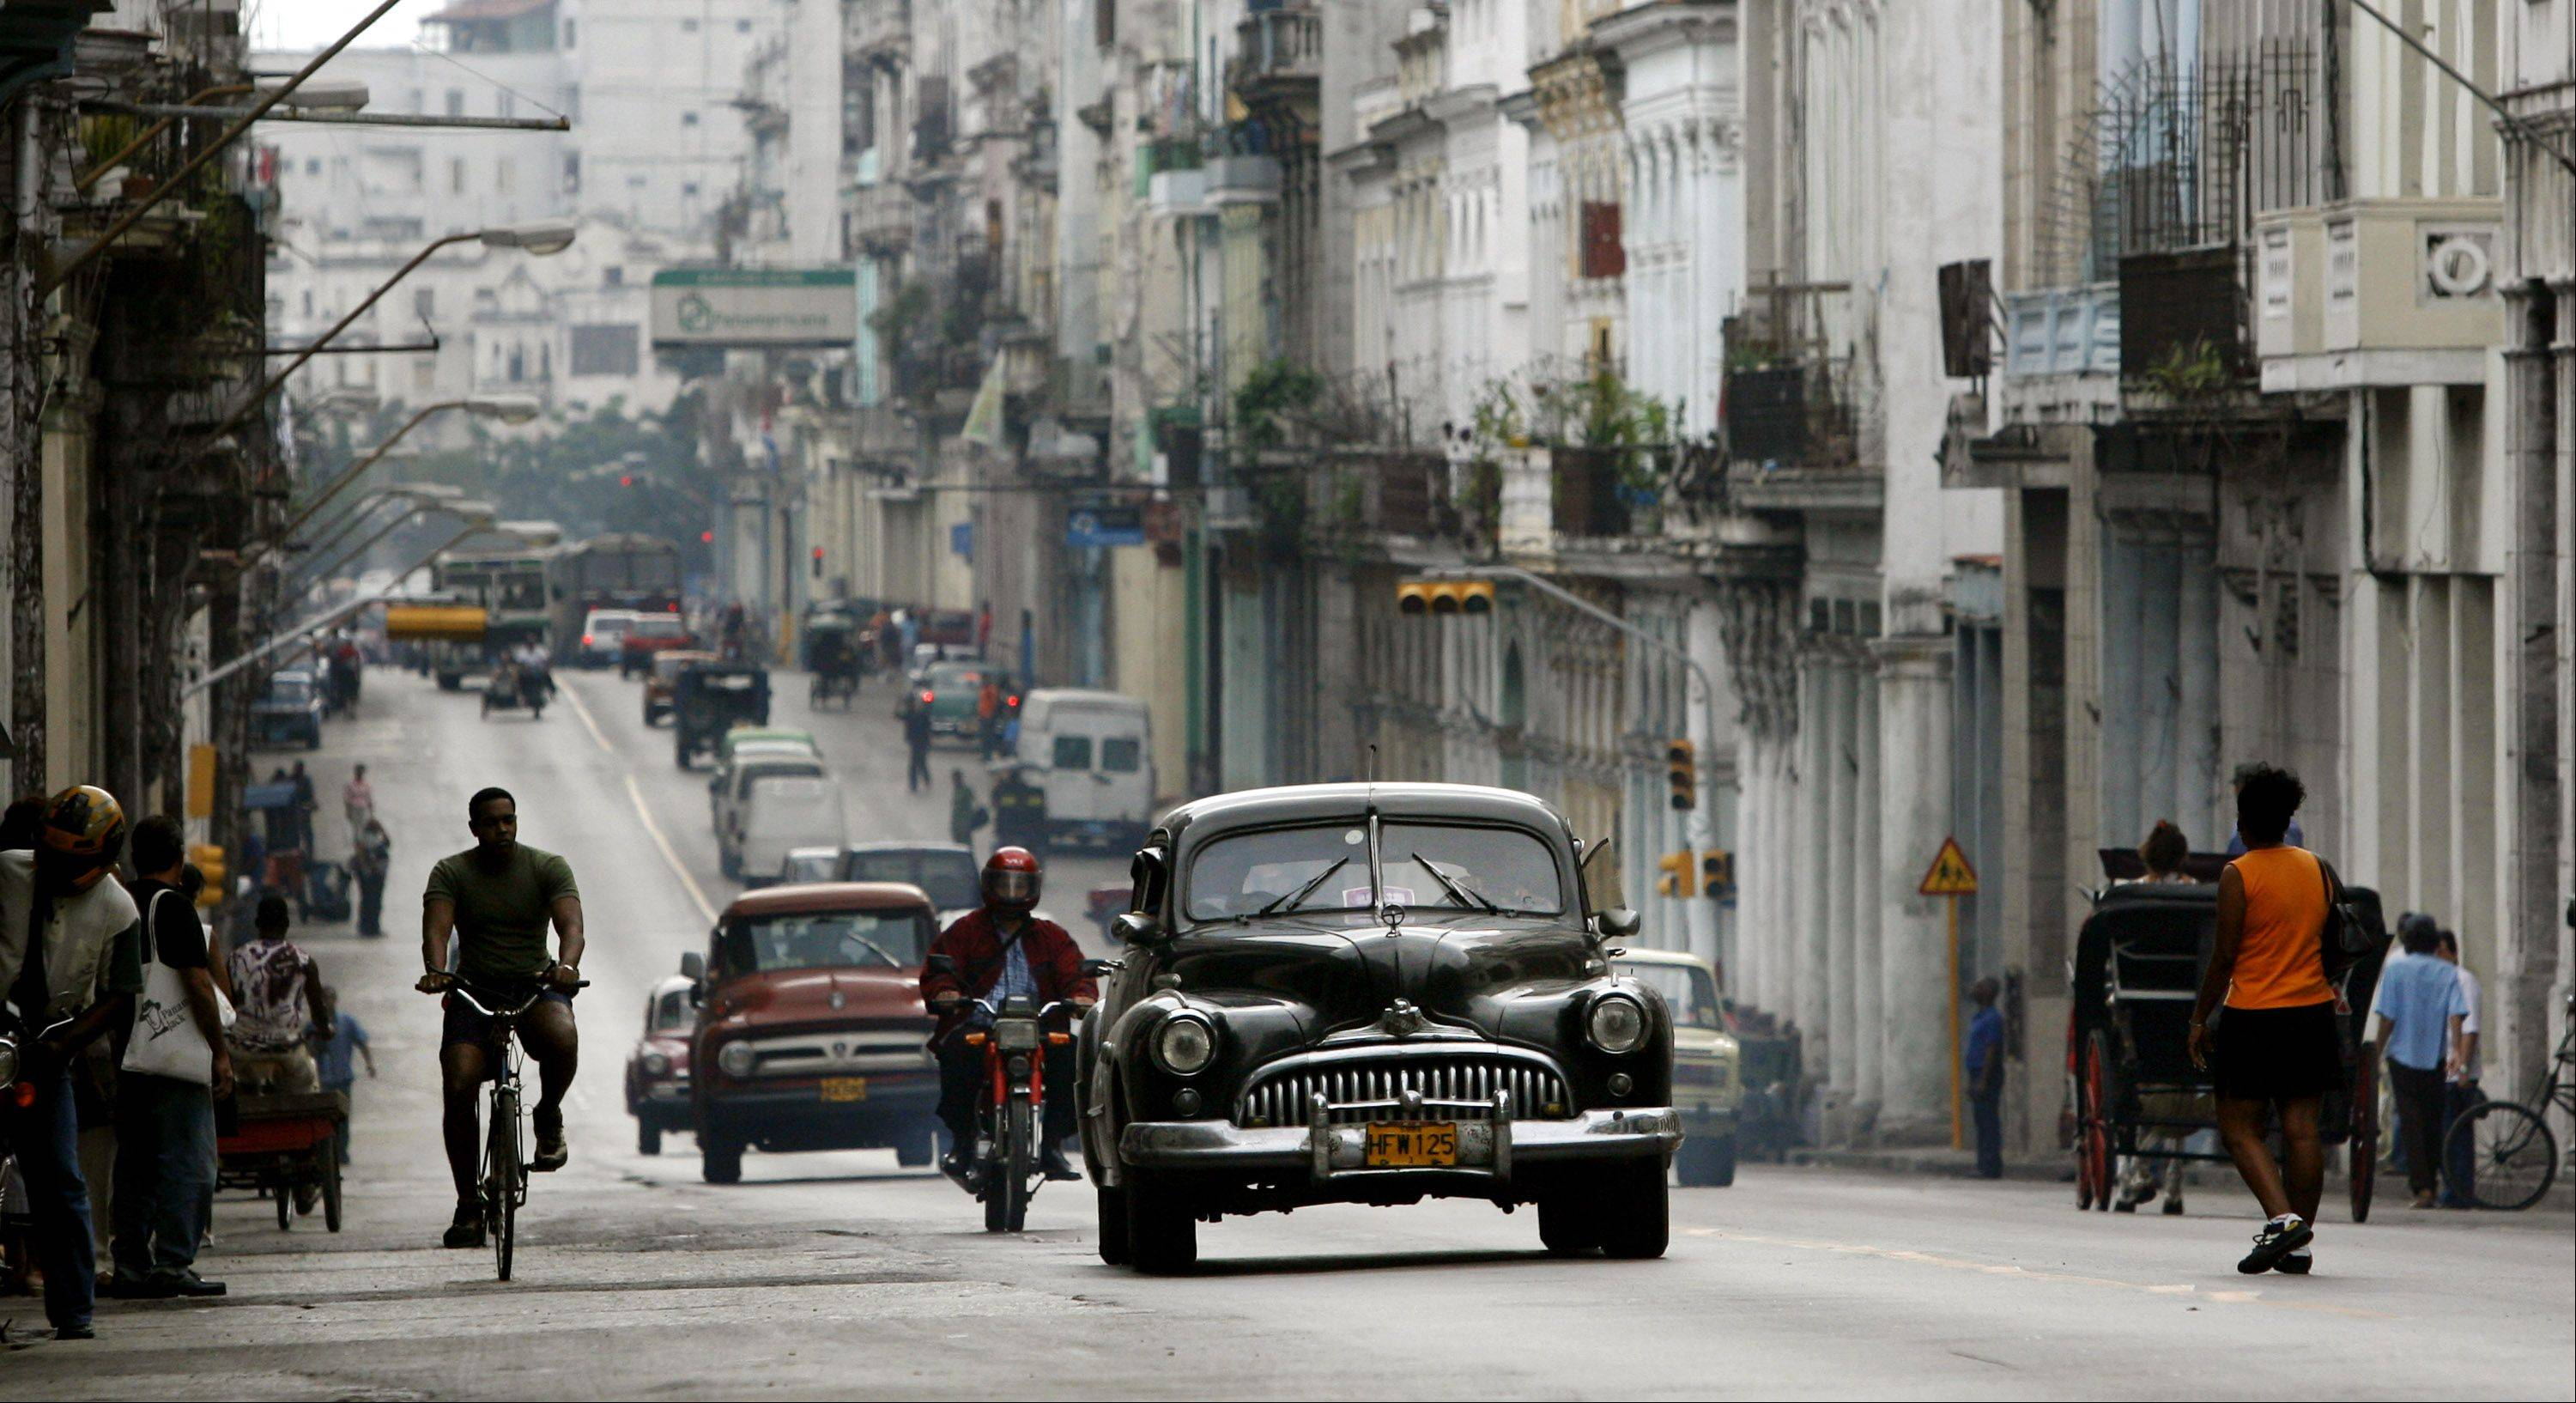 Cubans make their way through an avenue in Havana.